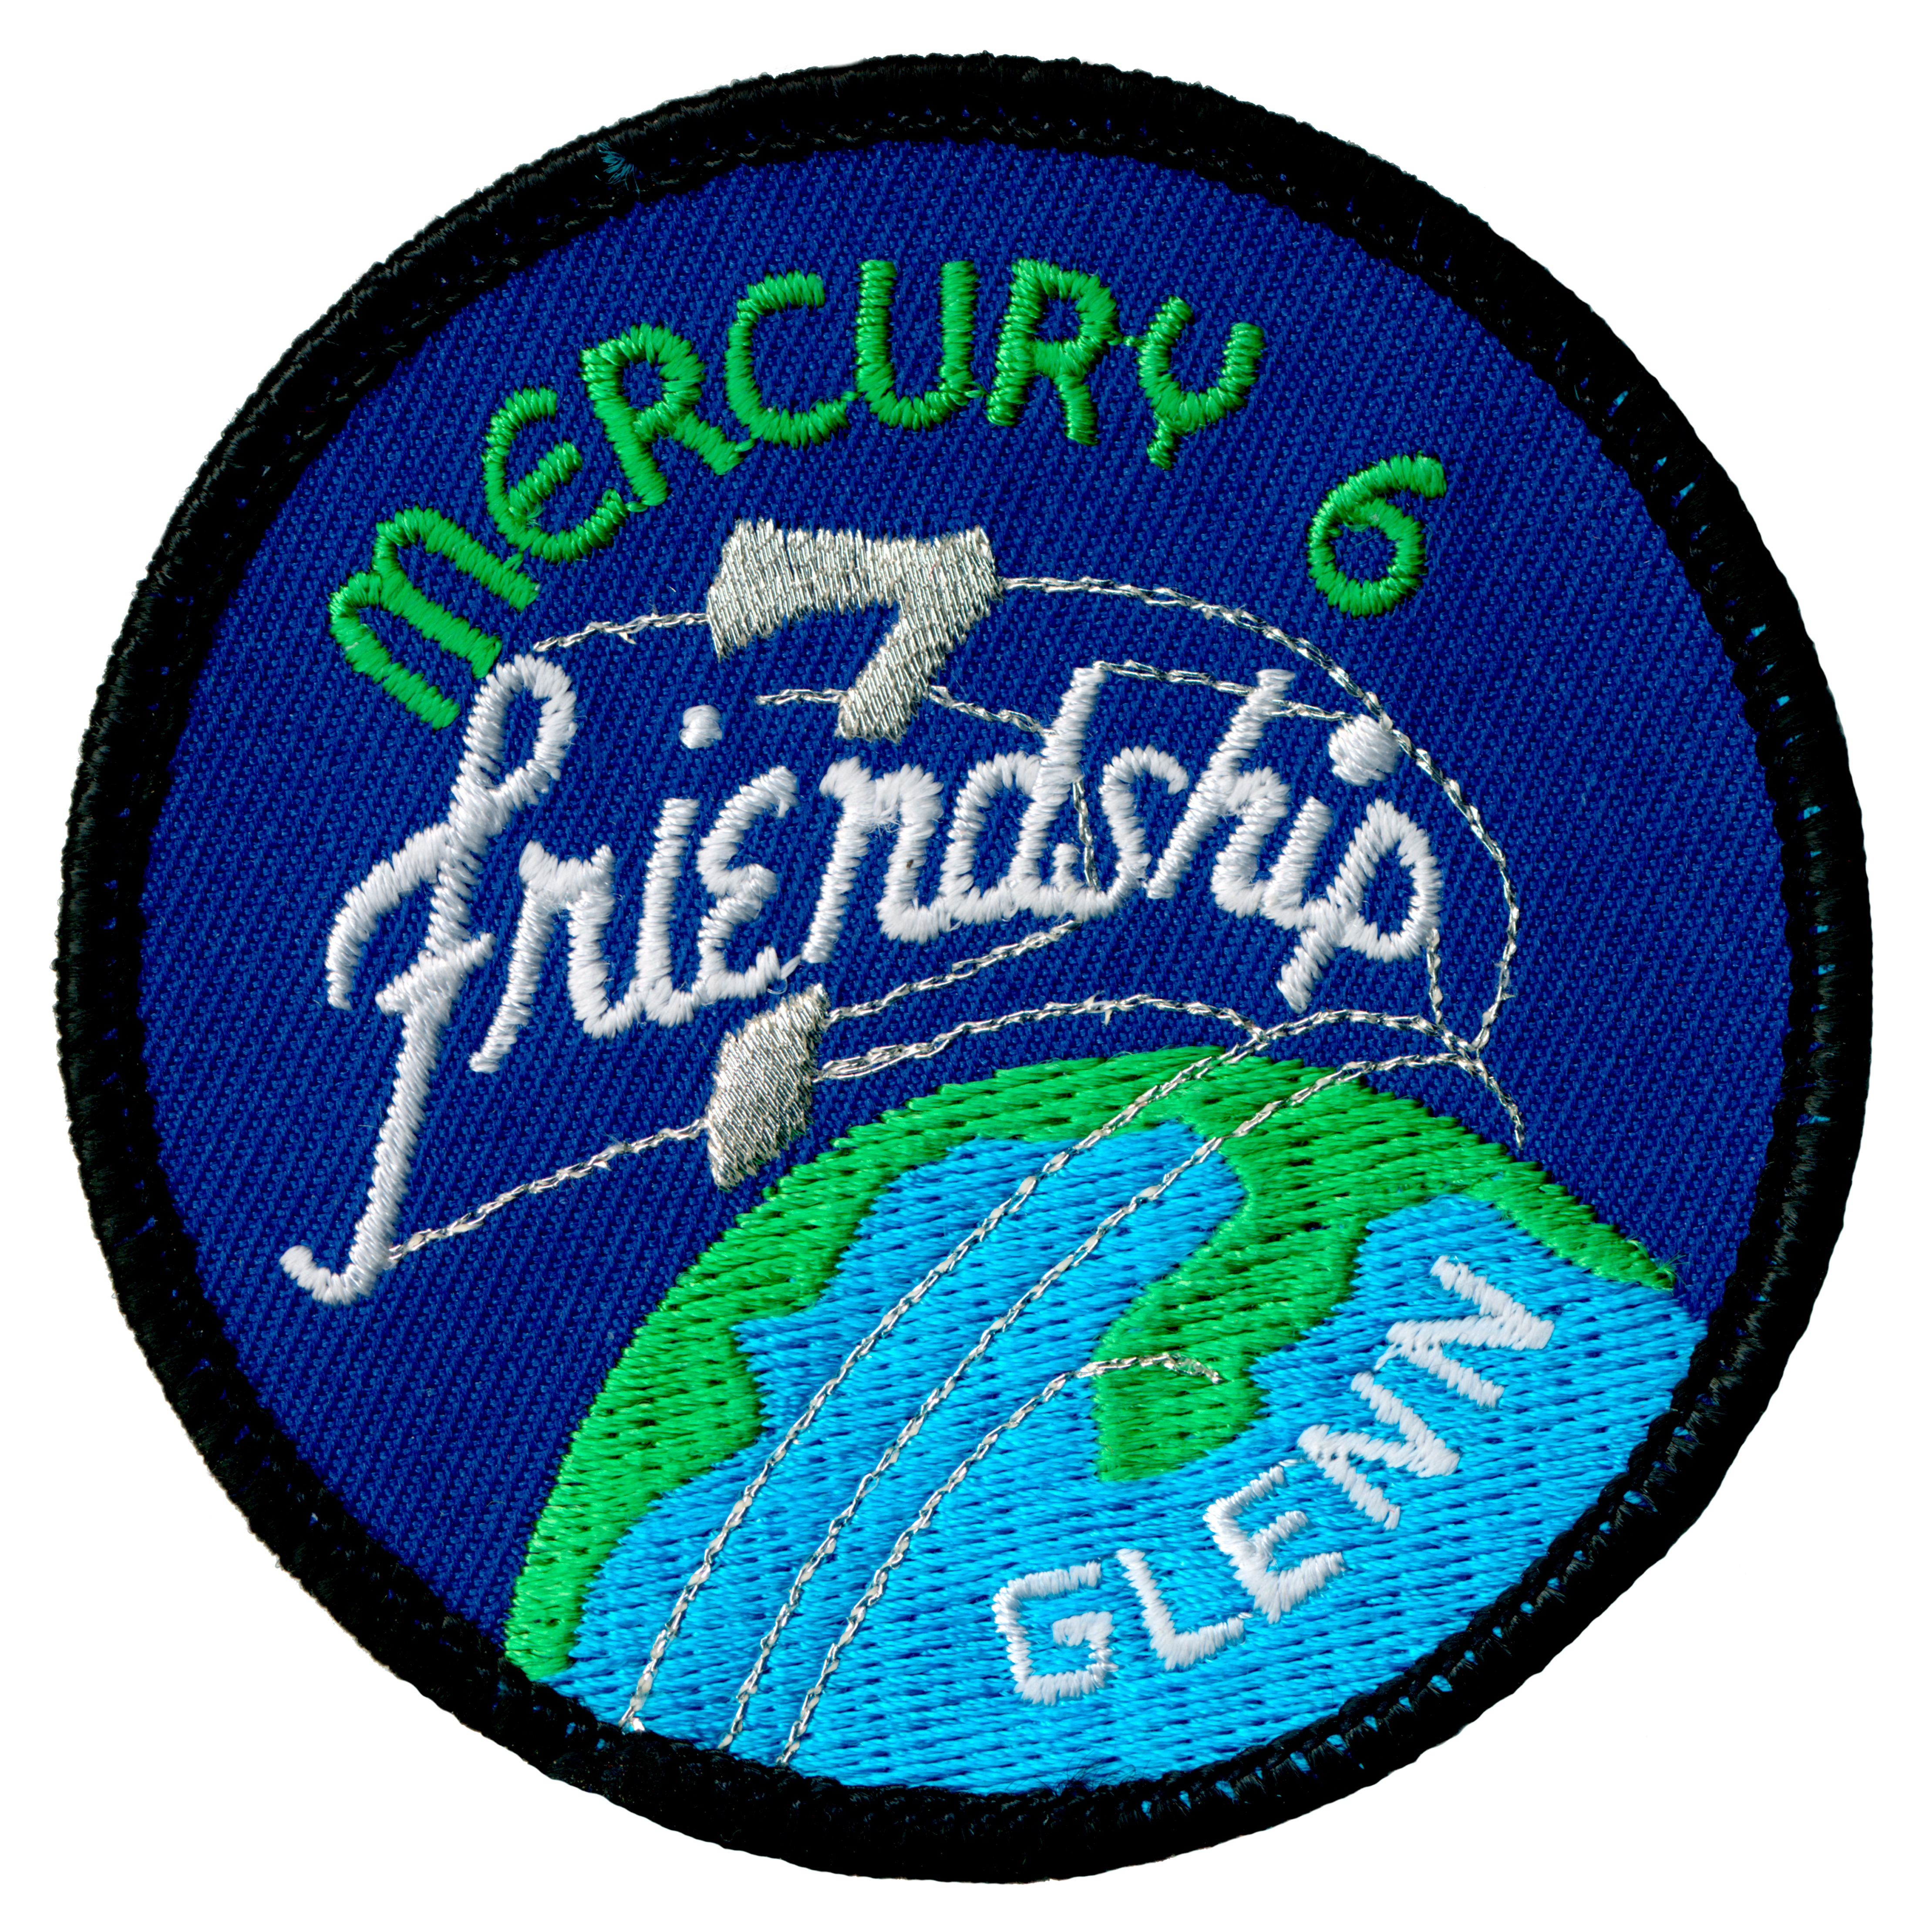 1978 mercury missions nasa - photo #43